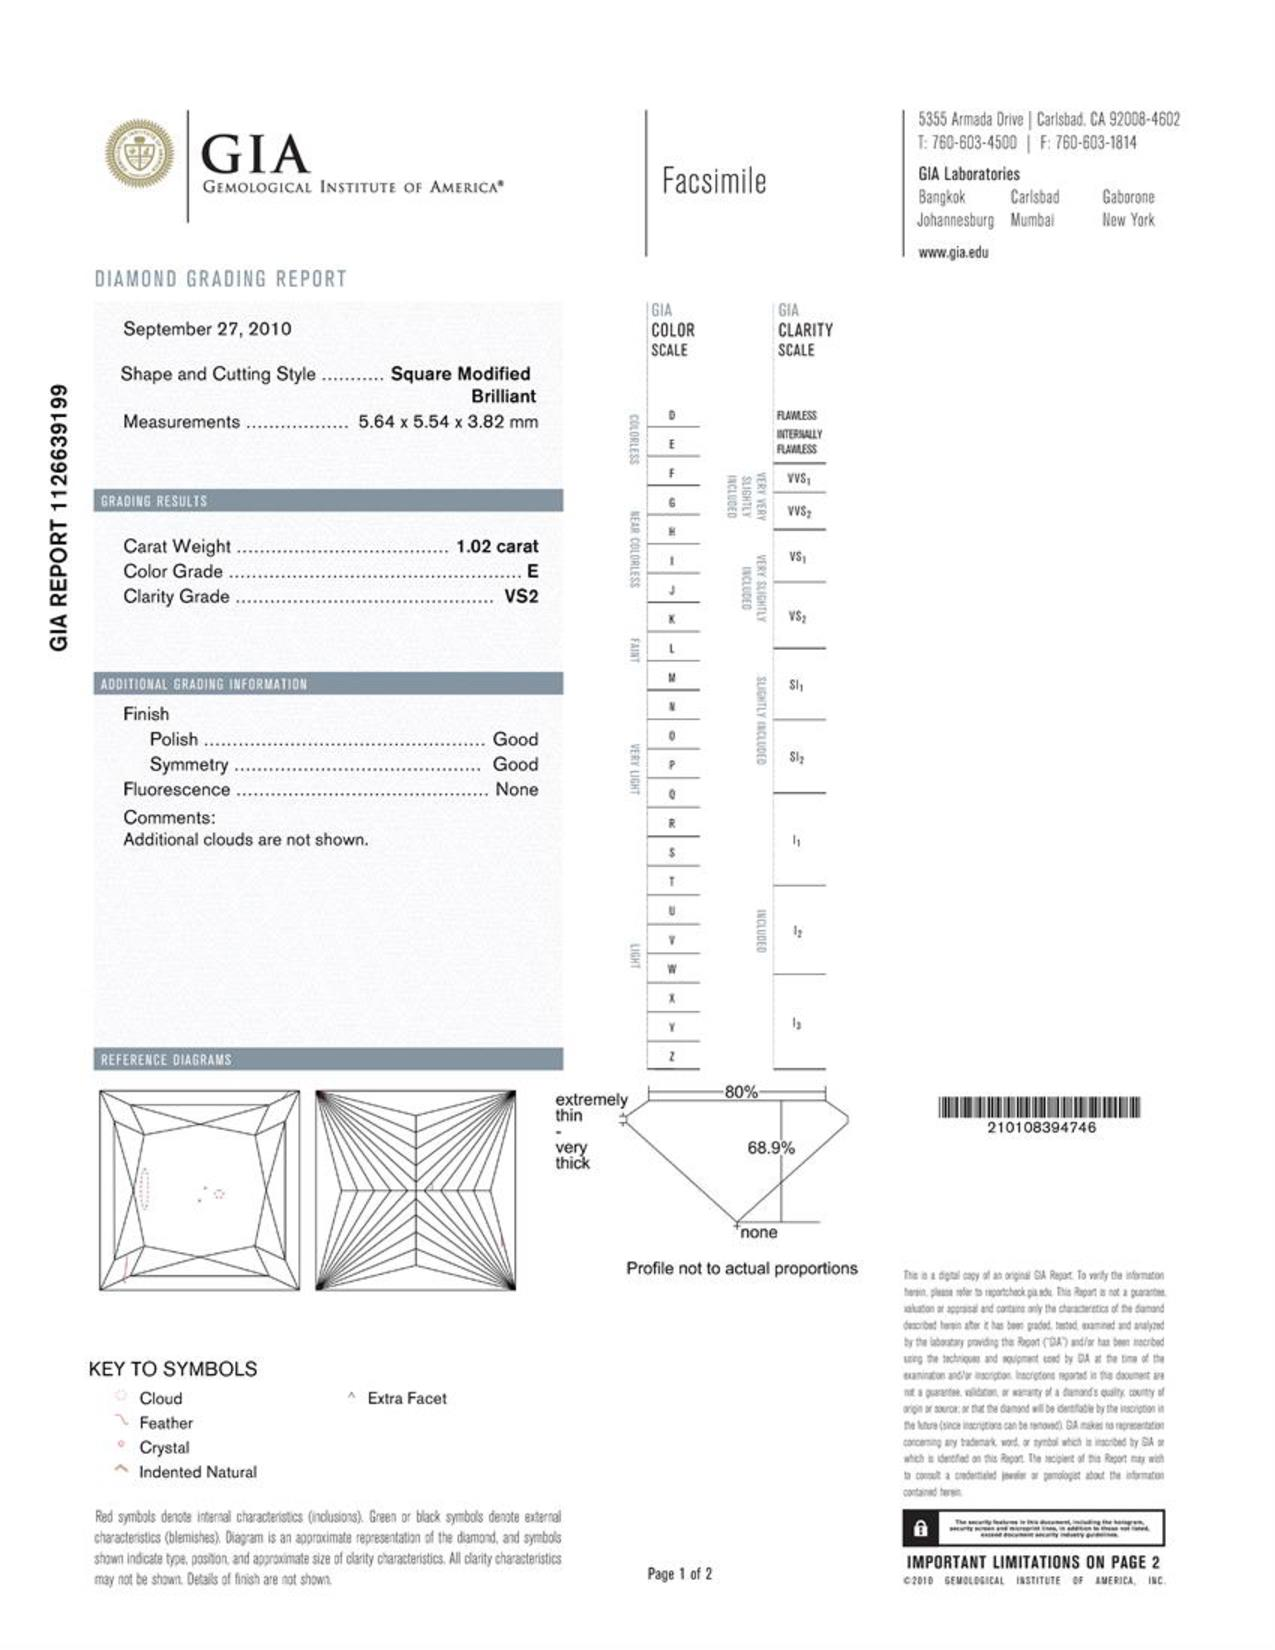 This is a 1.02 carat princess shape, E color, VS2 clarity natural diamond accompanied by a GIA grading report.